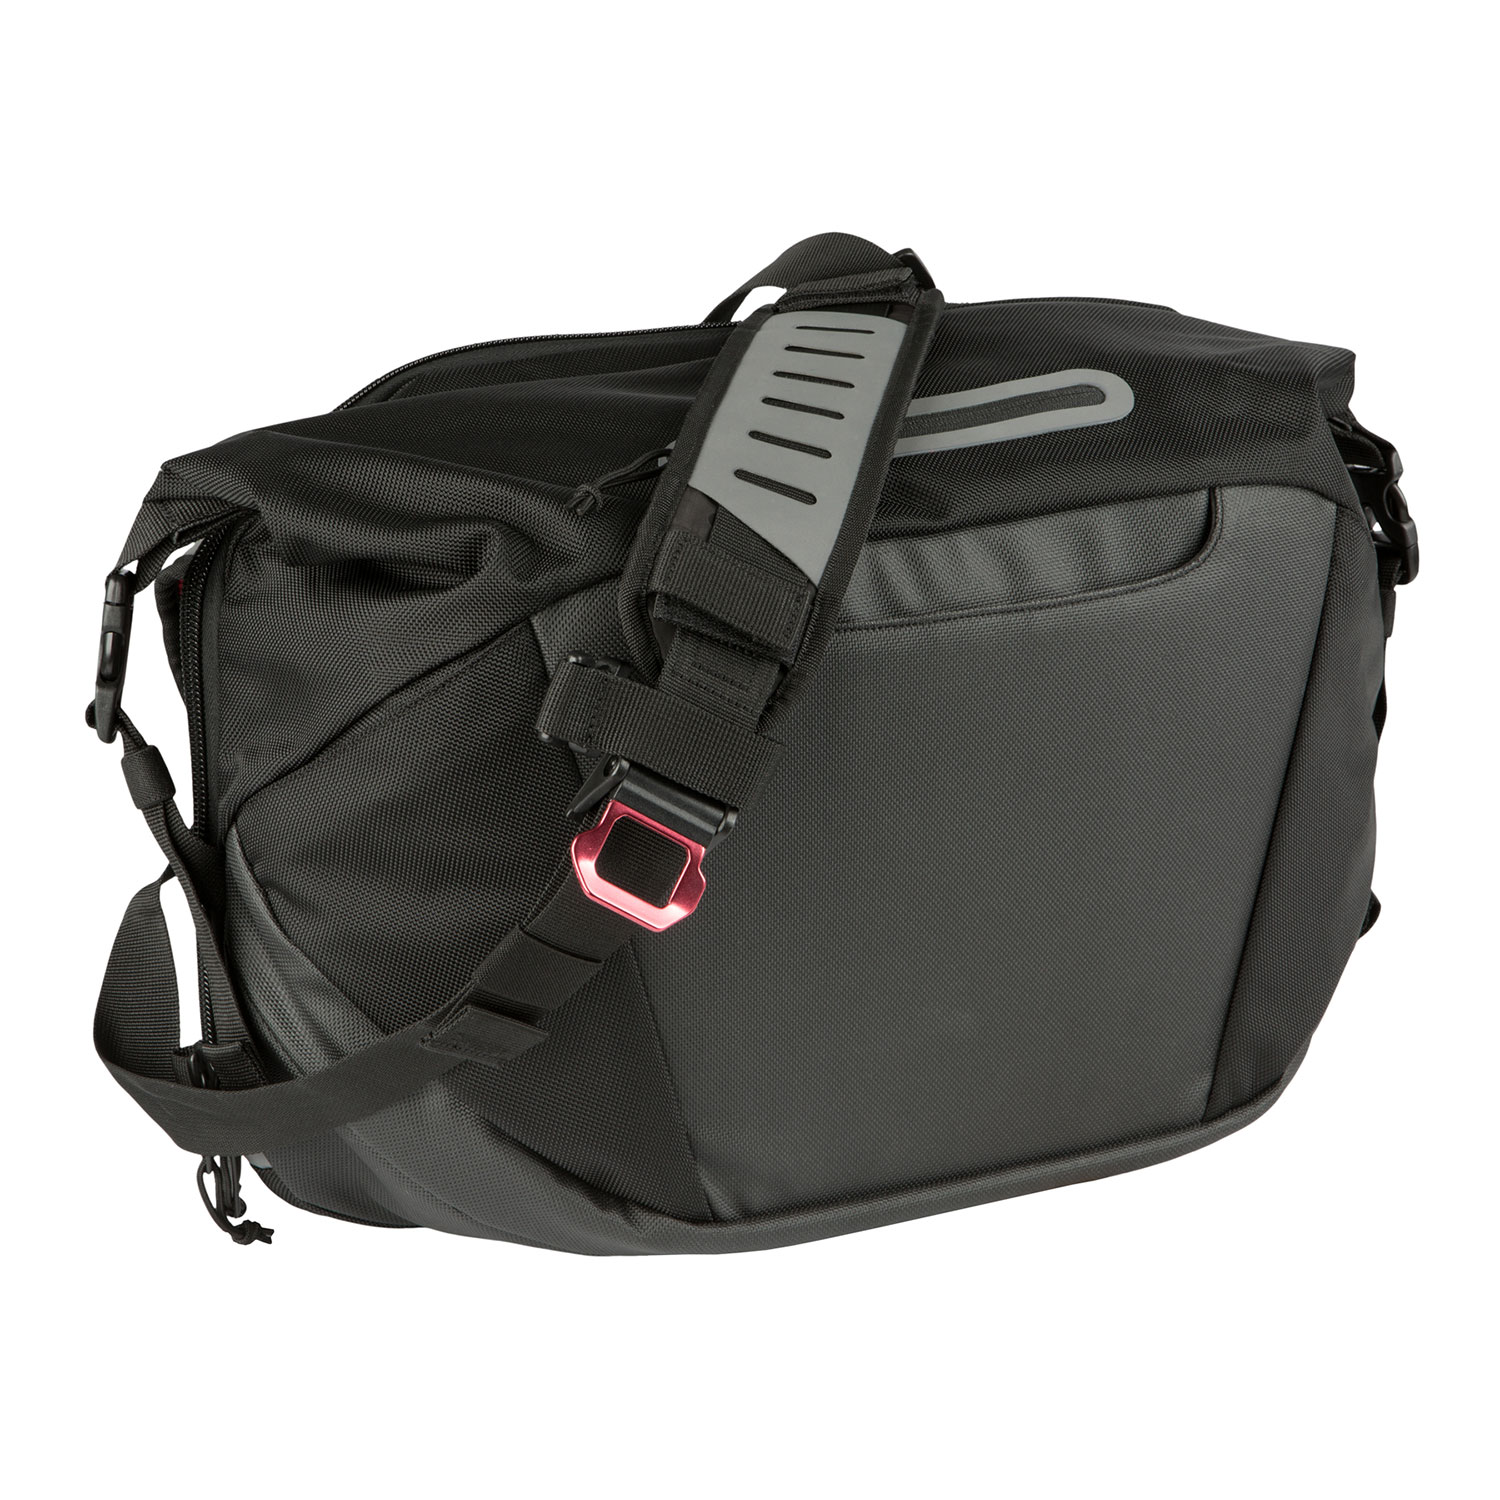 5.11 Tactical Covert Box Messenger